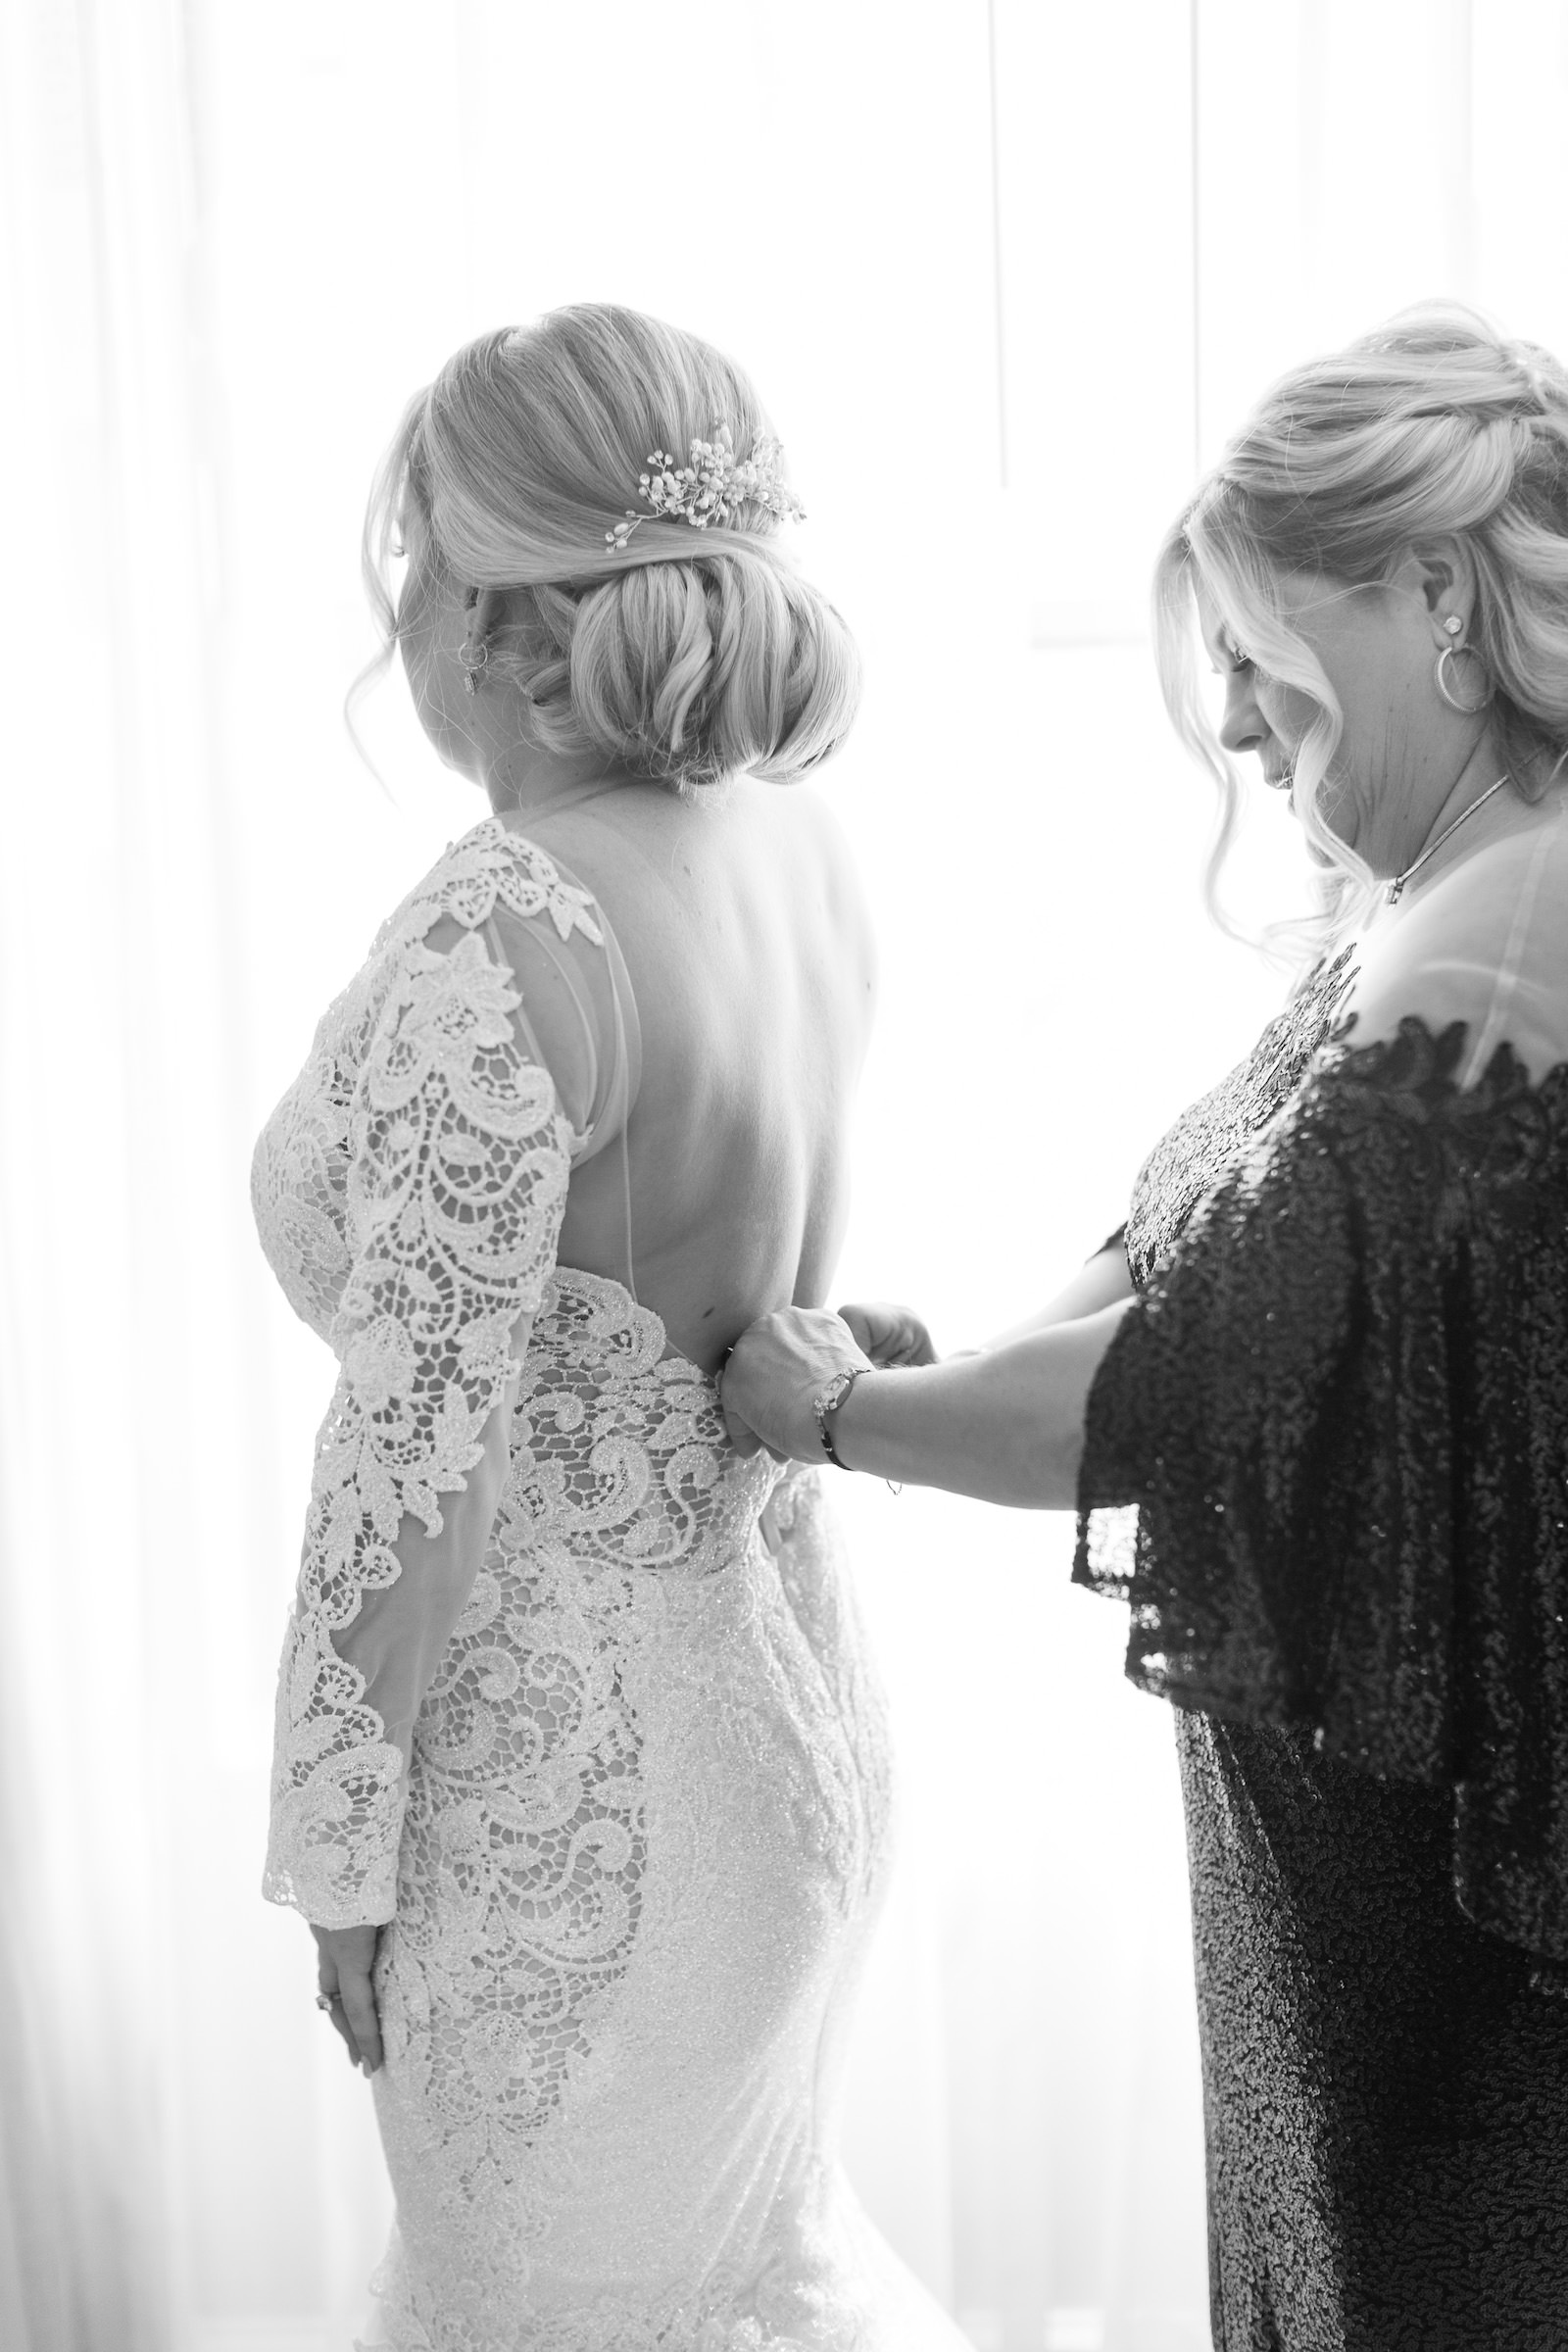 Bride Getting Ready in Lace and Illusion Open Back Wedding Dress